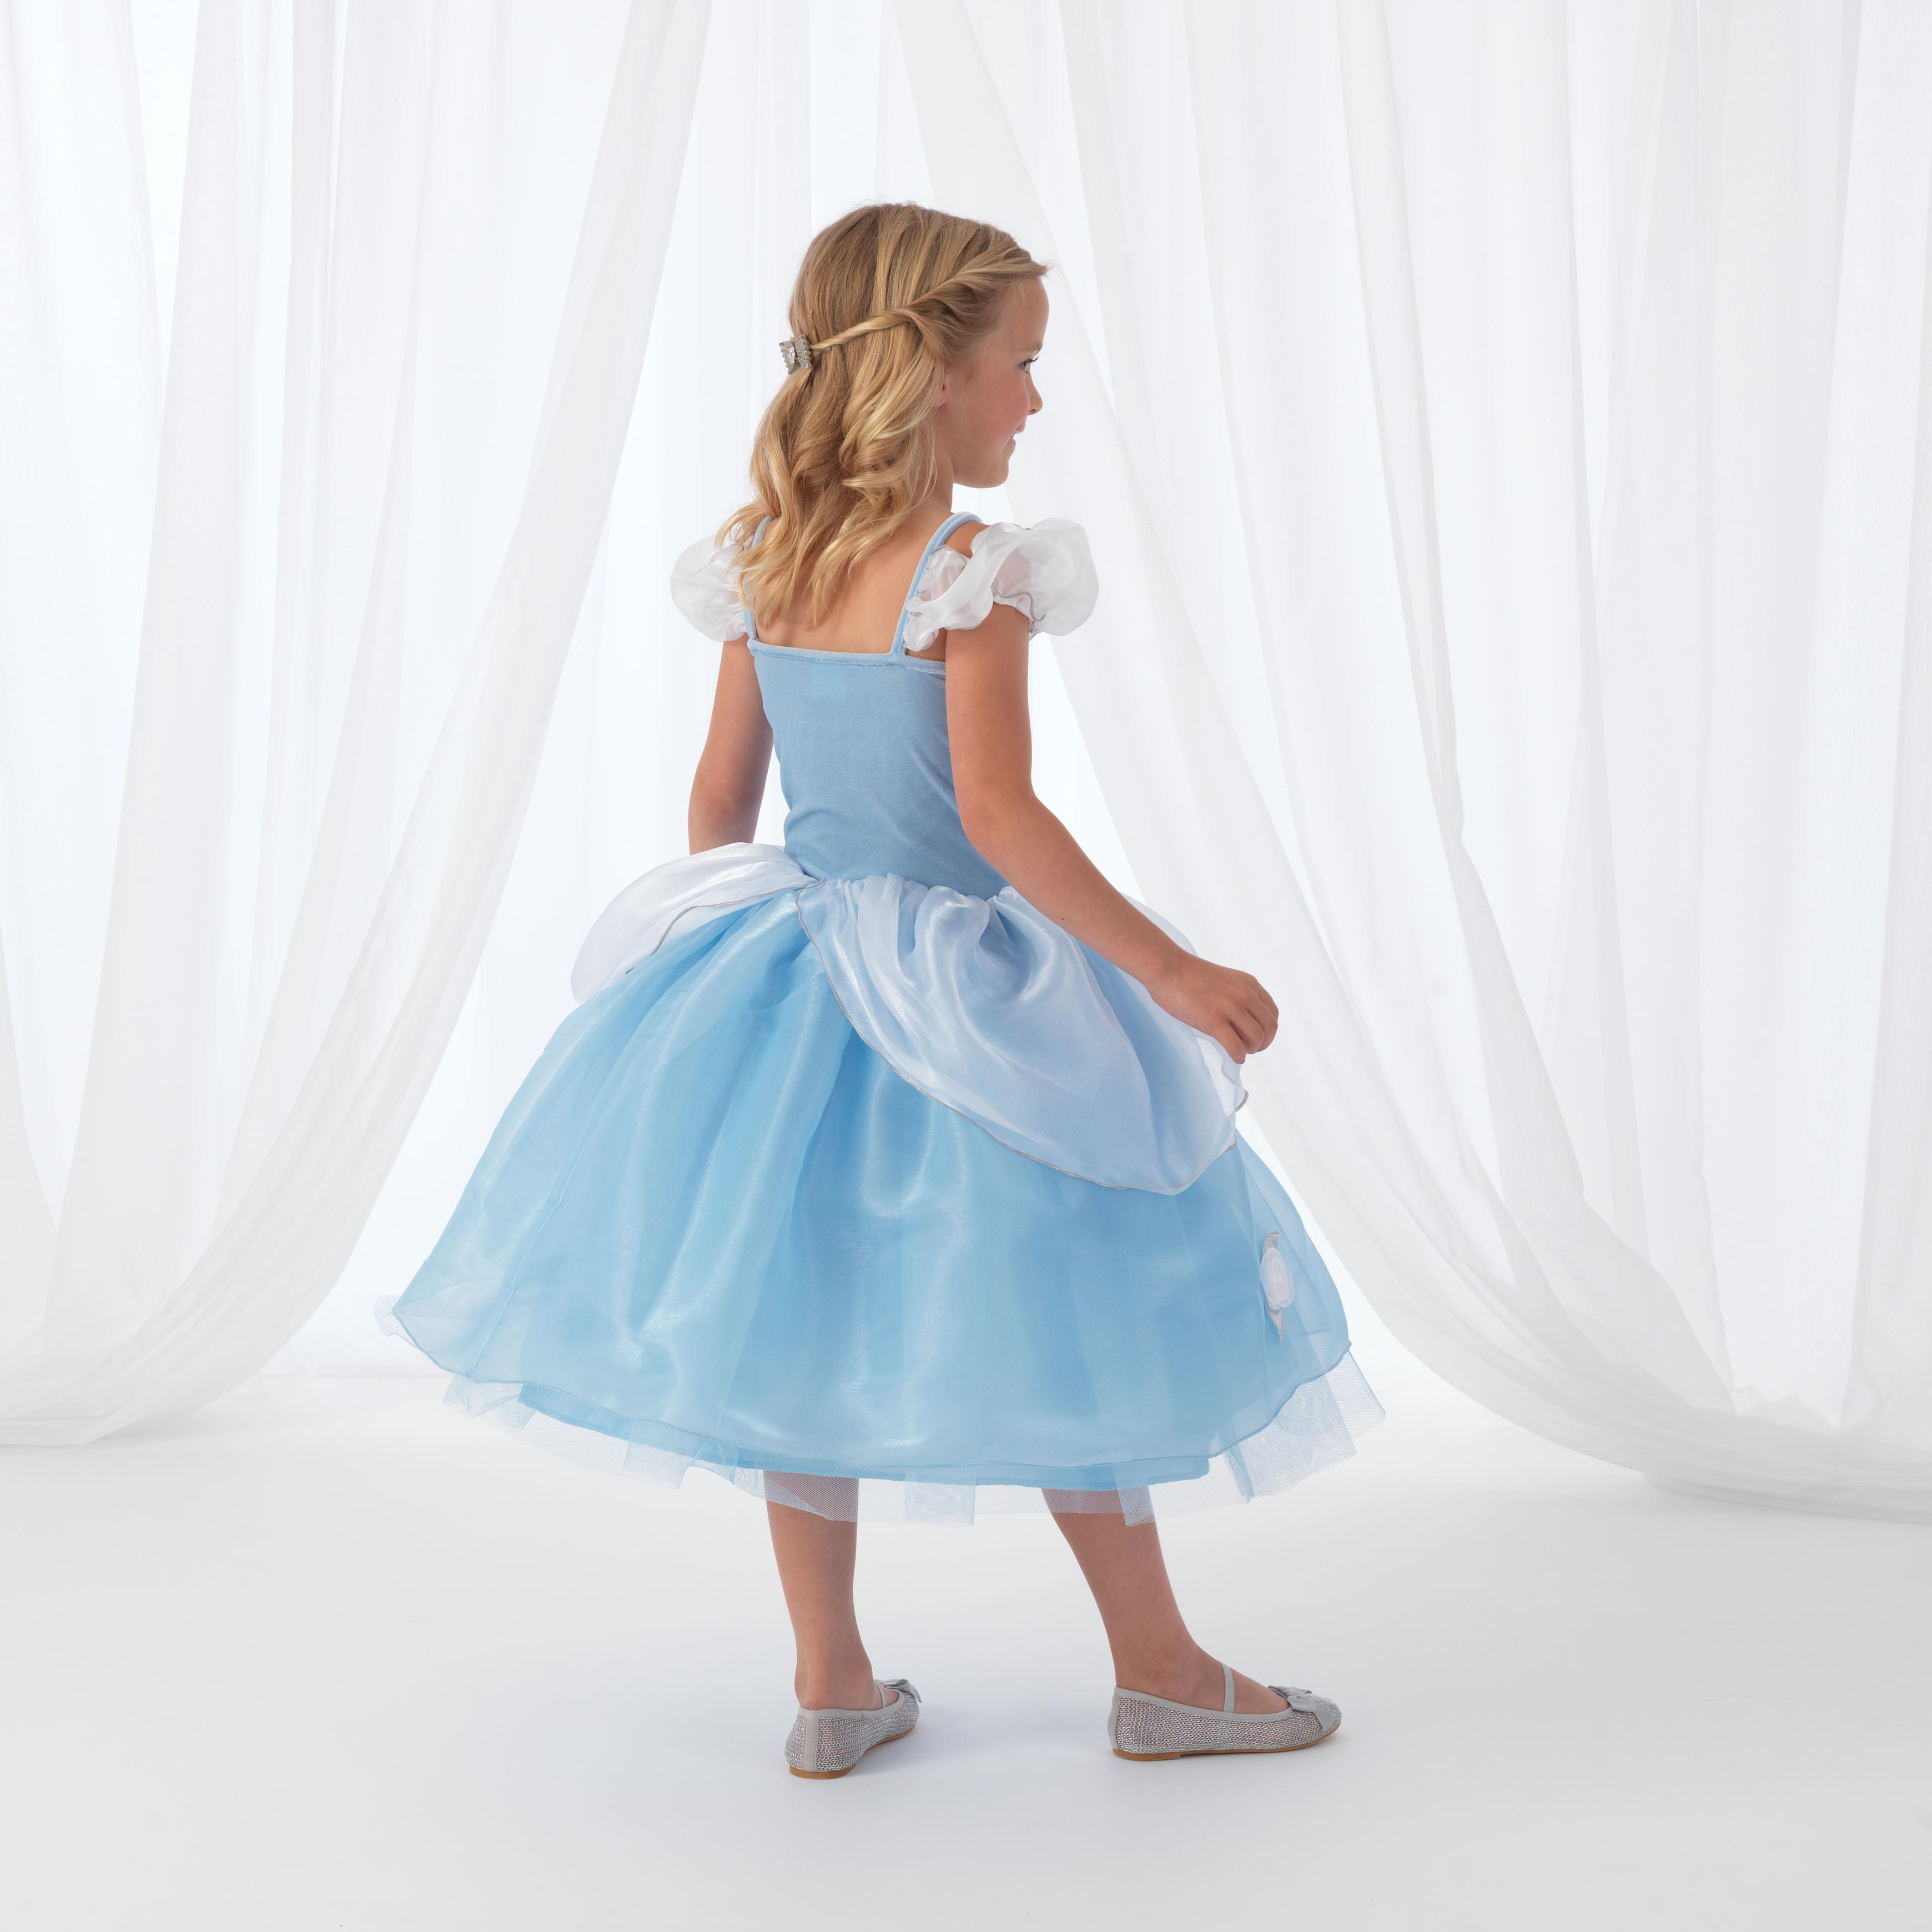 KidKraft   KidKraft Blue Rose Princess Dress Up Costume   Walmart.com